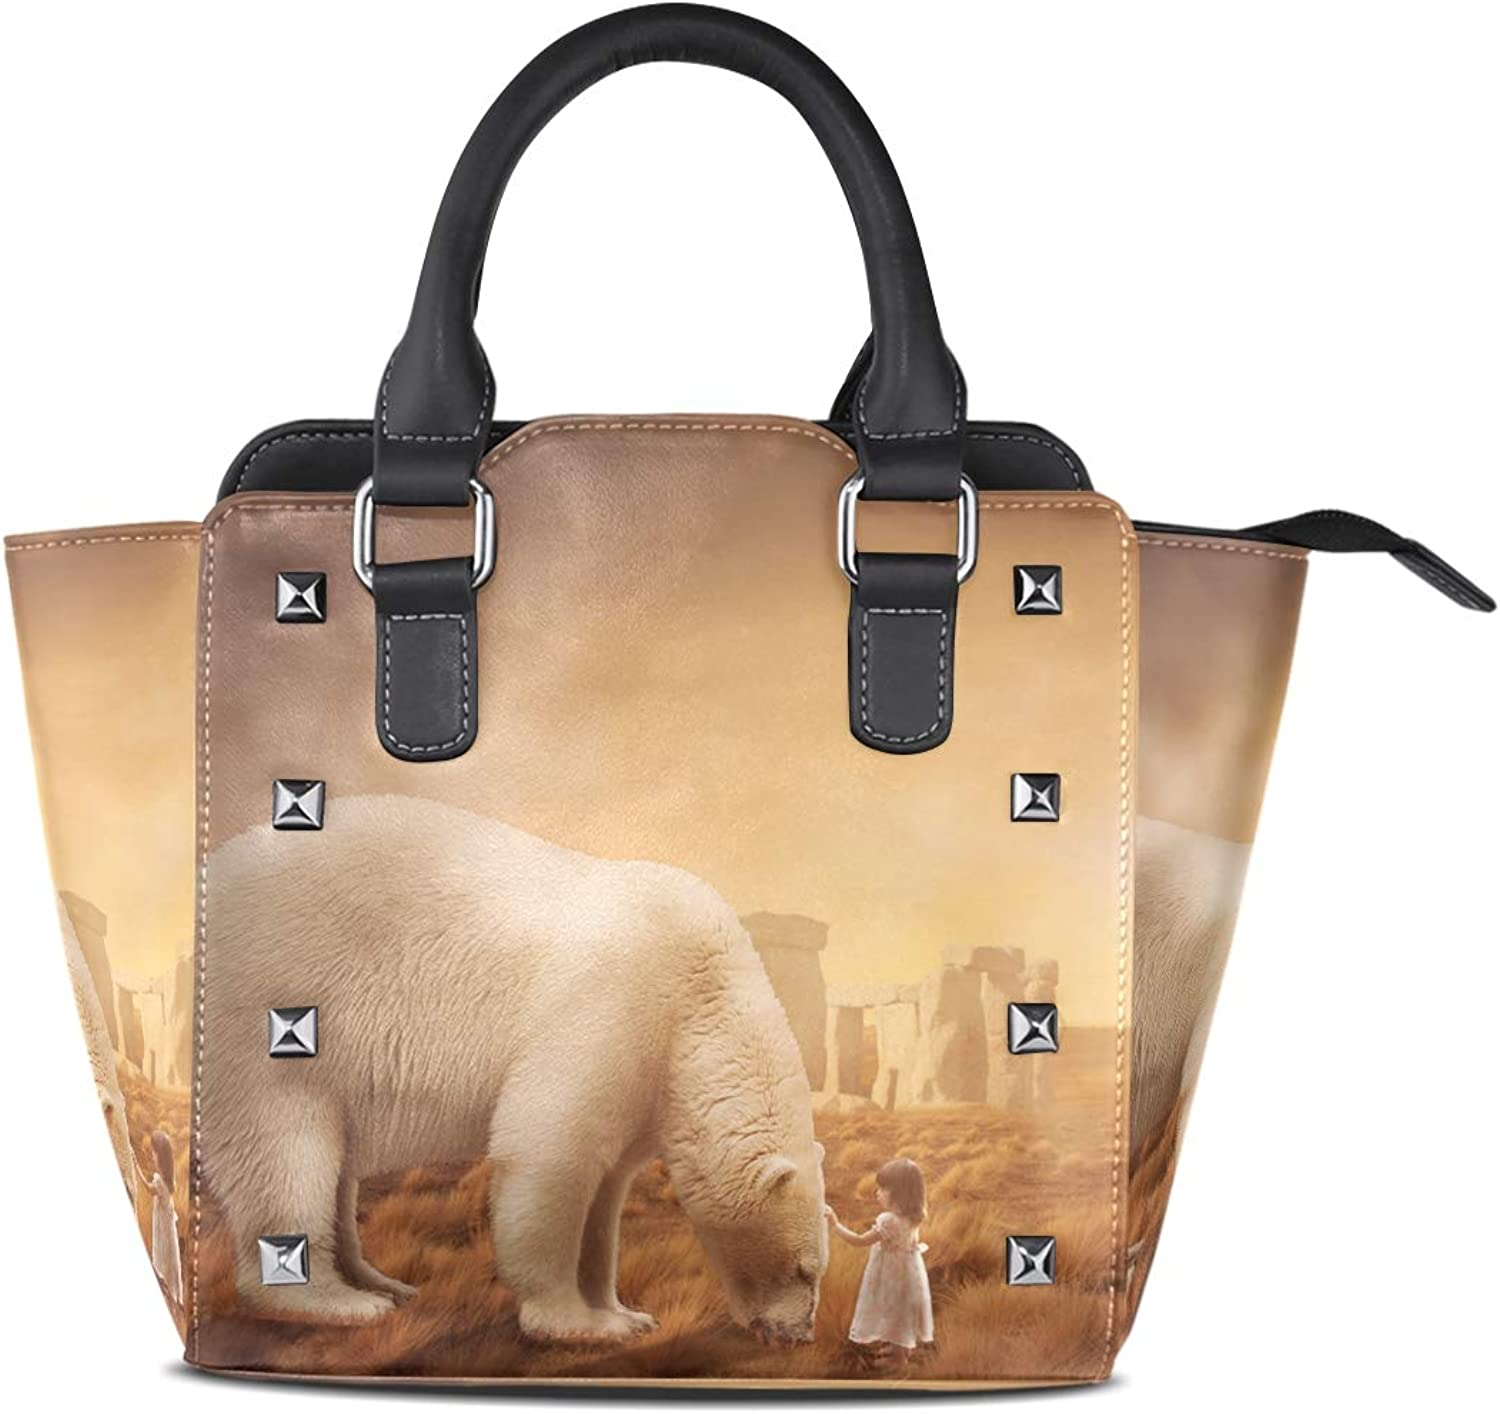 Leather Sunset Bear Little Girl Rivet Handbags Tote Bag Shoulder Satchel for Women Girls